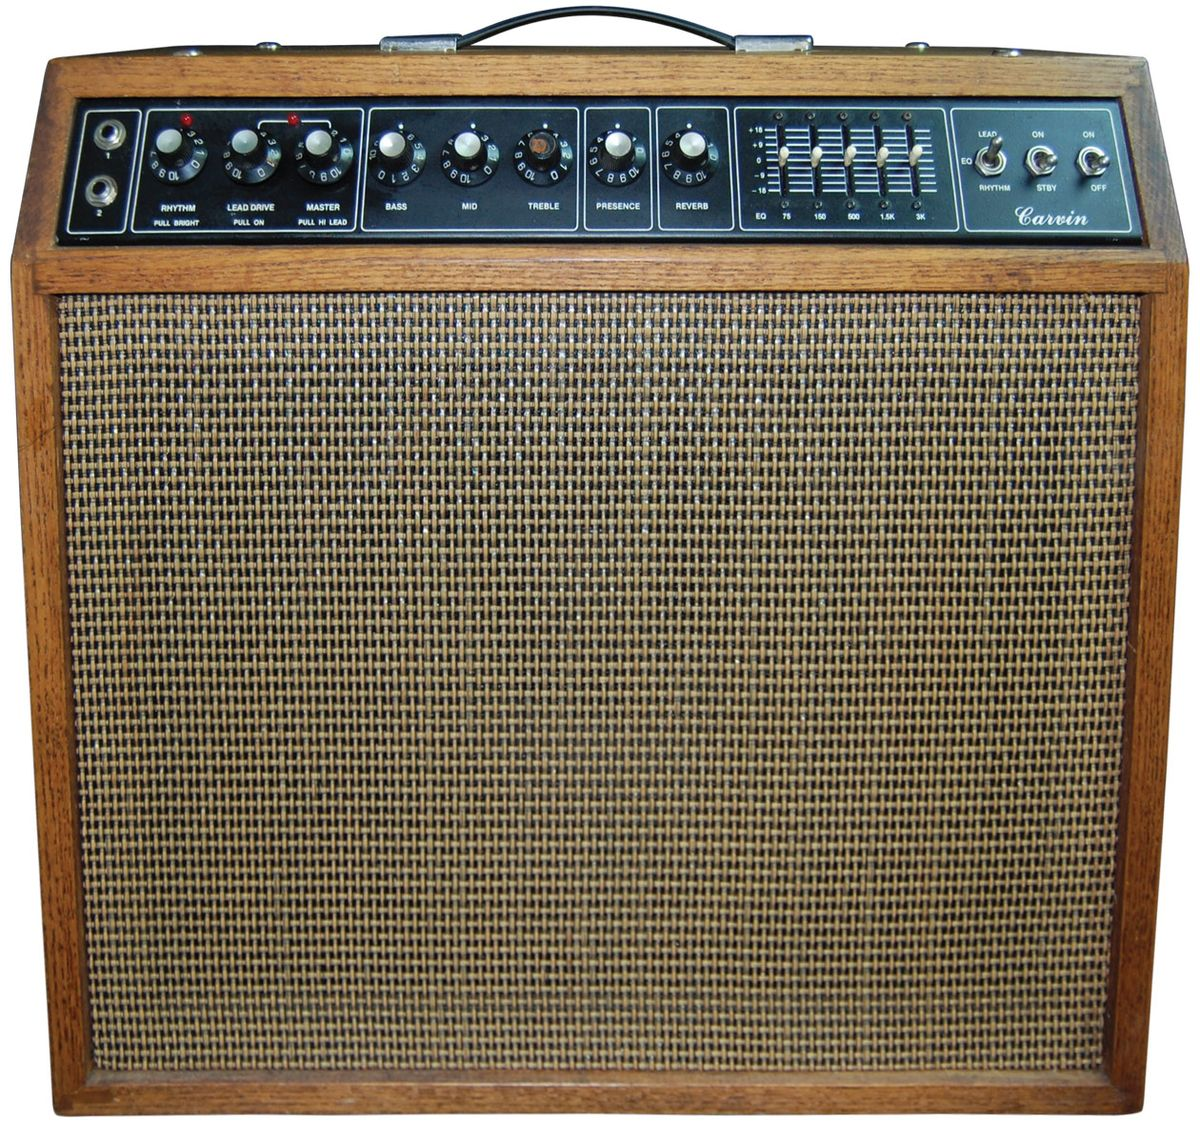 Ask Amp Man: Tone Tweaks for a Carvin Series III X